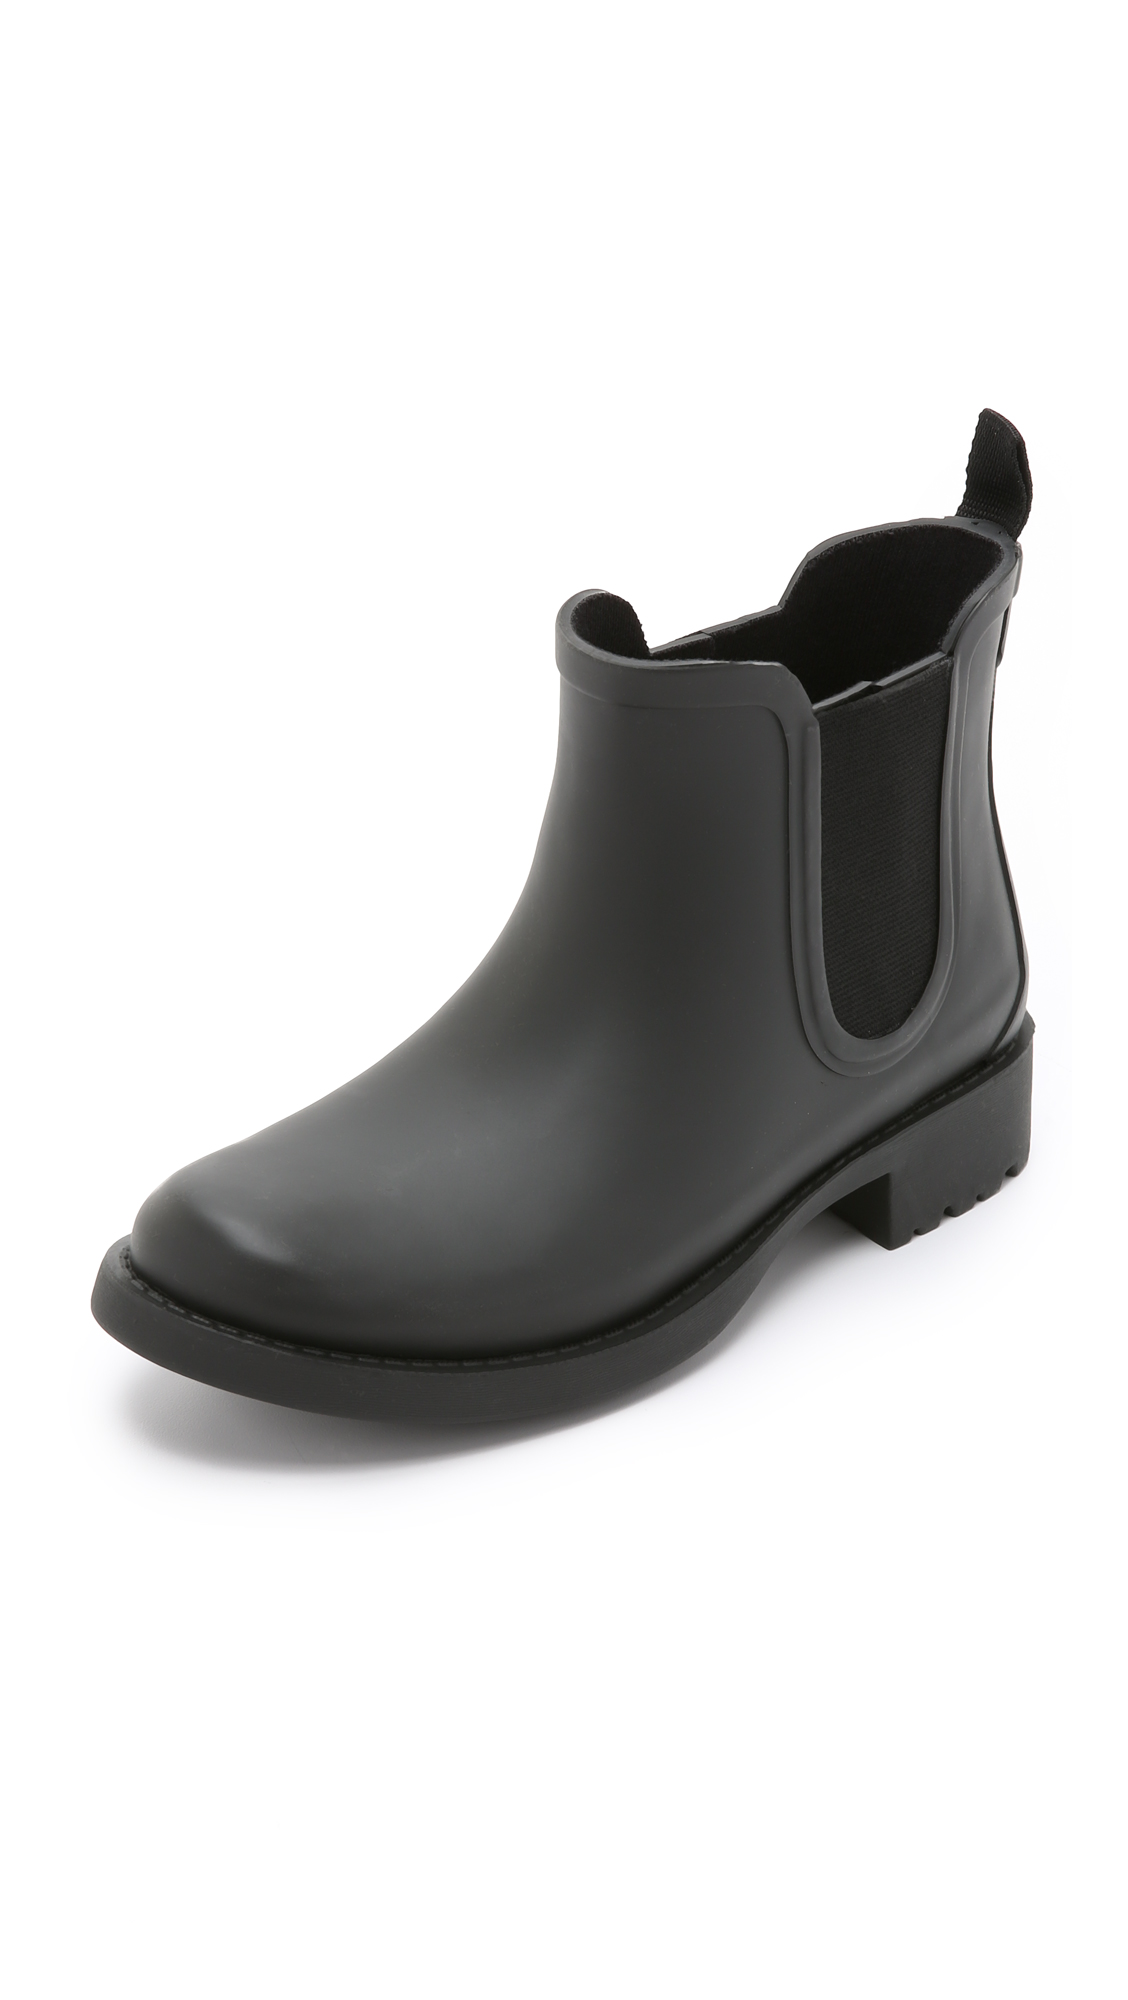 Bernardo 'Pansie' Rain Booties These boots are made primarily of rubber, but look sophisticated enough to wear all day at work. Sam Edelman 'Tinsley' Rain Boot This boot by Sam Edelman comes.